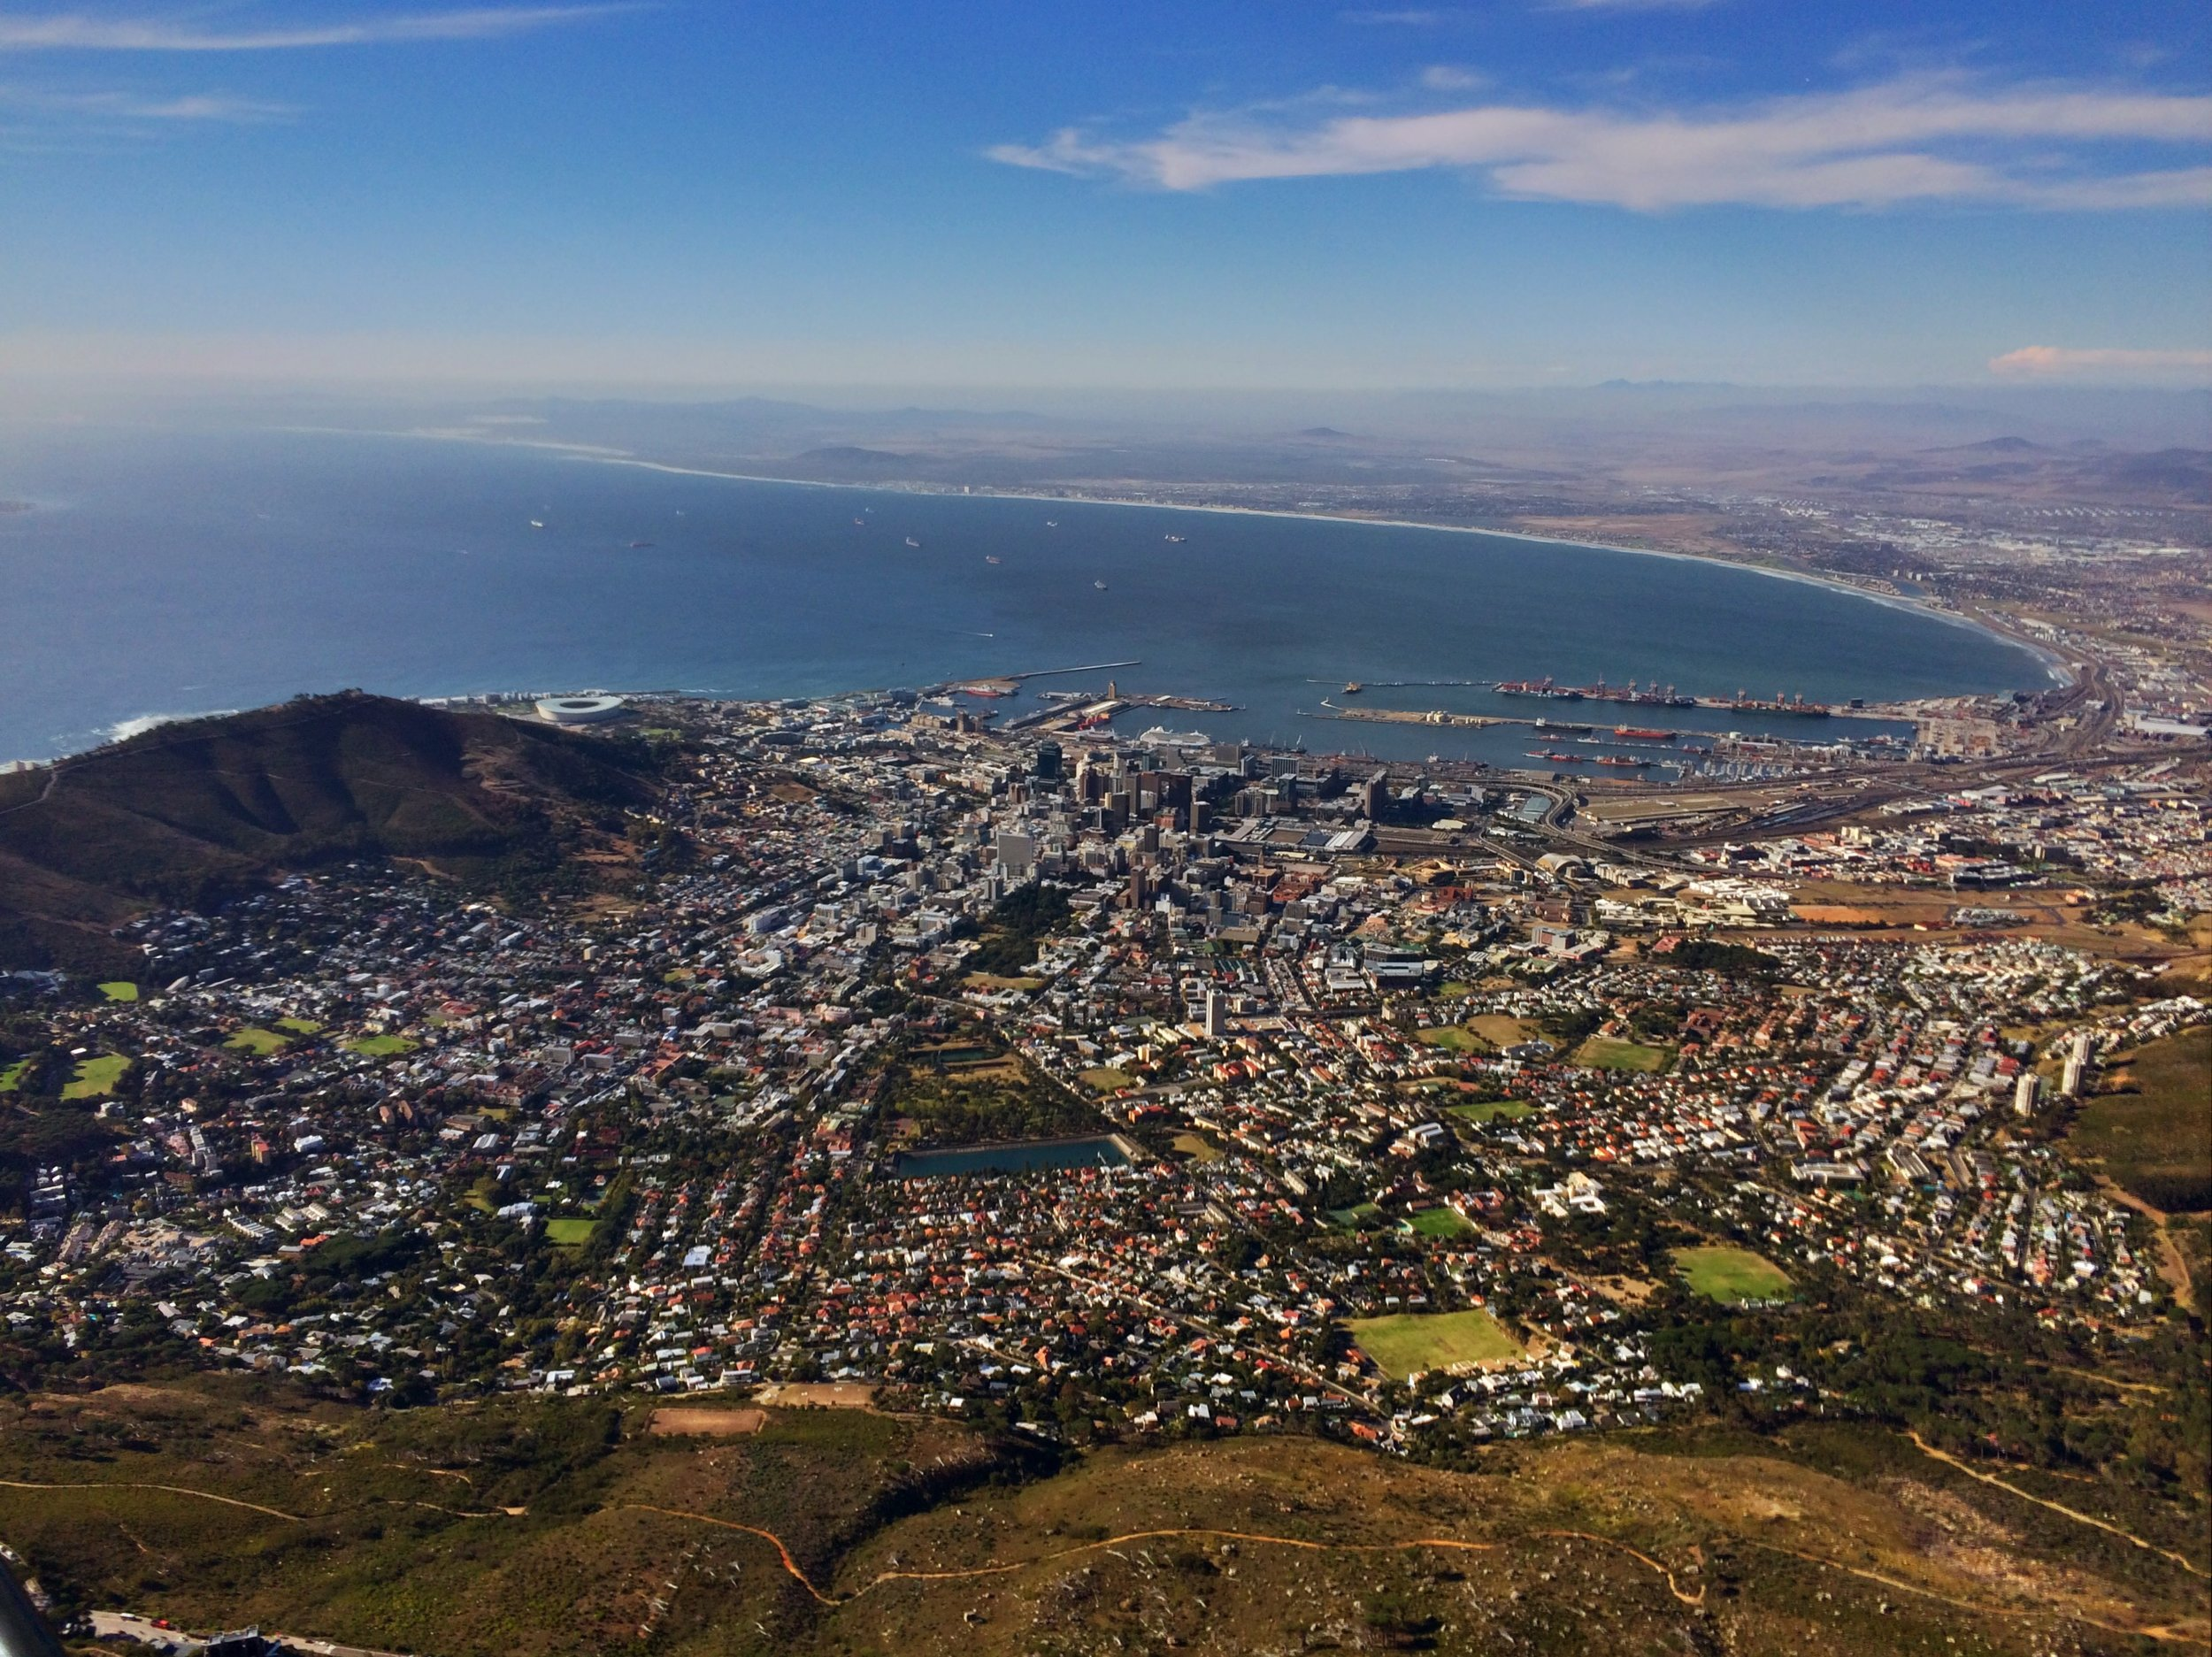 View of Cape Town from the top of Table Mountain